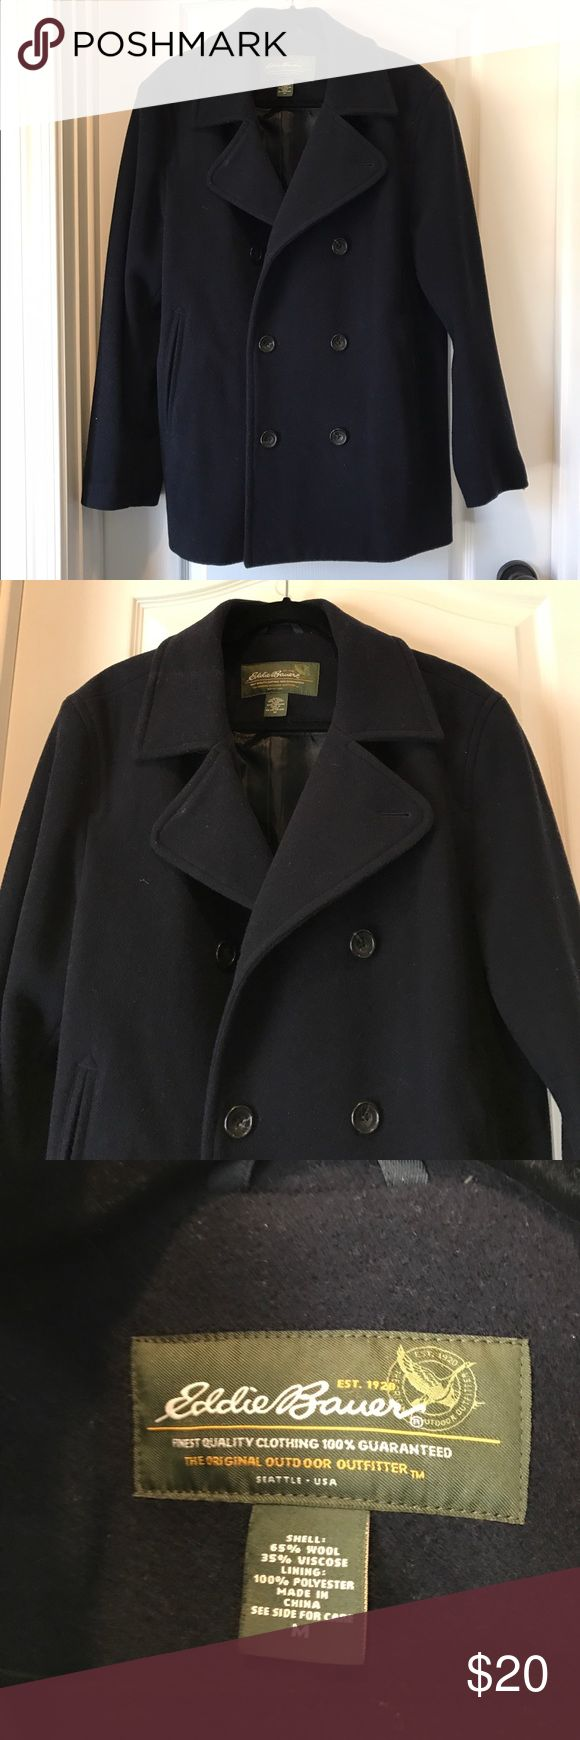 Eddie Bauer Men's Peacoat Very gently used. No damages, stains, or wearing. Lined in polyester. Outer shell is 65% wool, 35% viscose. I think the pockets are fake. Eddie Bauer Jackets & Coats Pea Coats